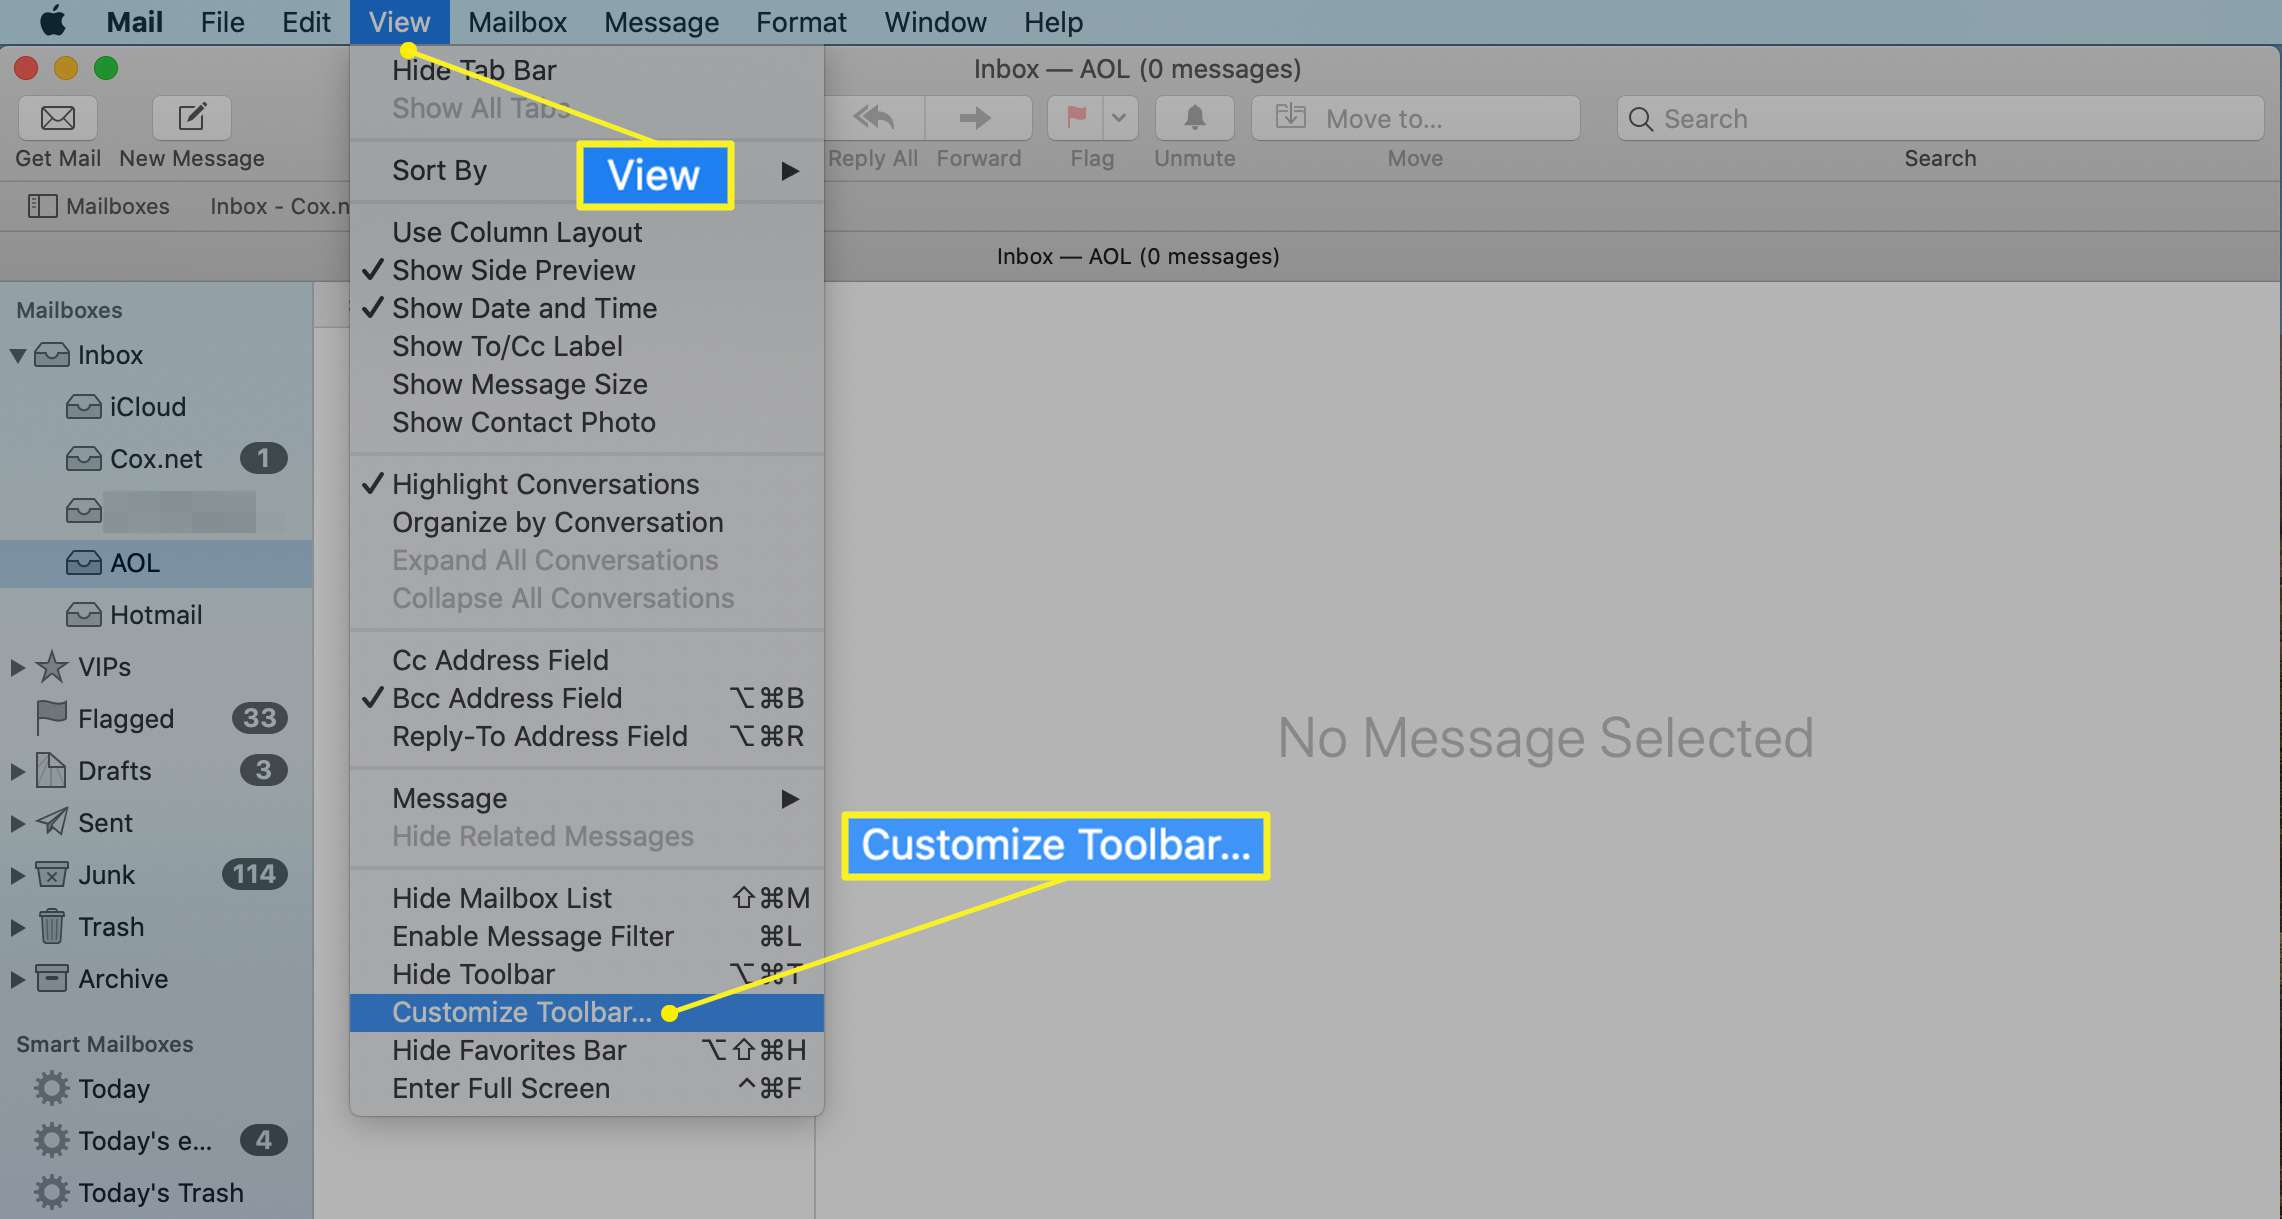 Customize Toolbar option in Mac Mail